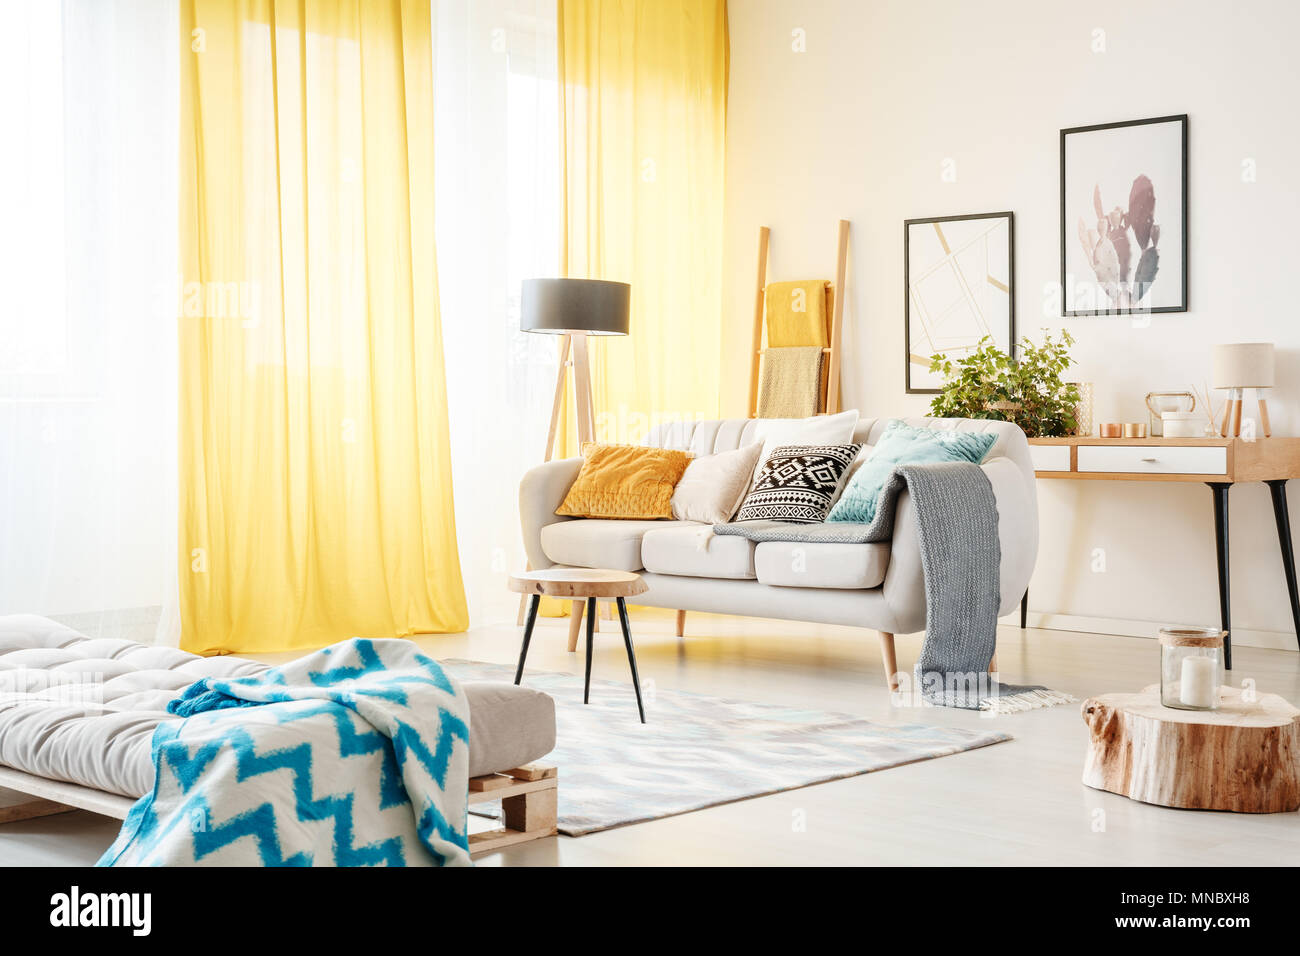 Patterned Blanket On Settee And Candle On Wooden Stump In Spacious Living  Room With Yellow Curtains And Beige Sofa